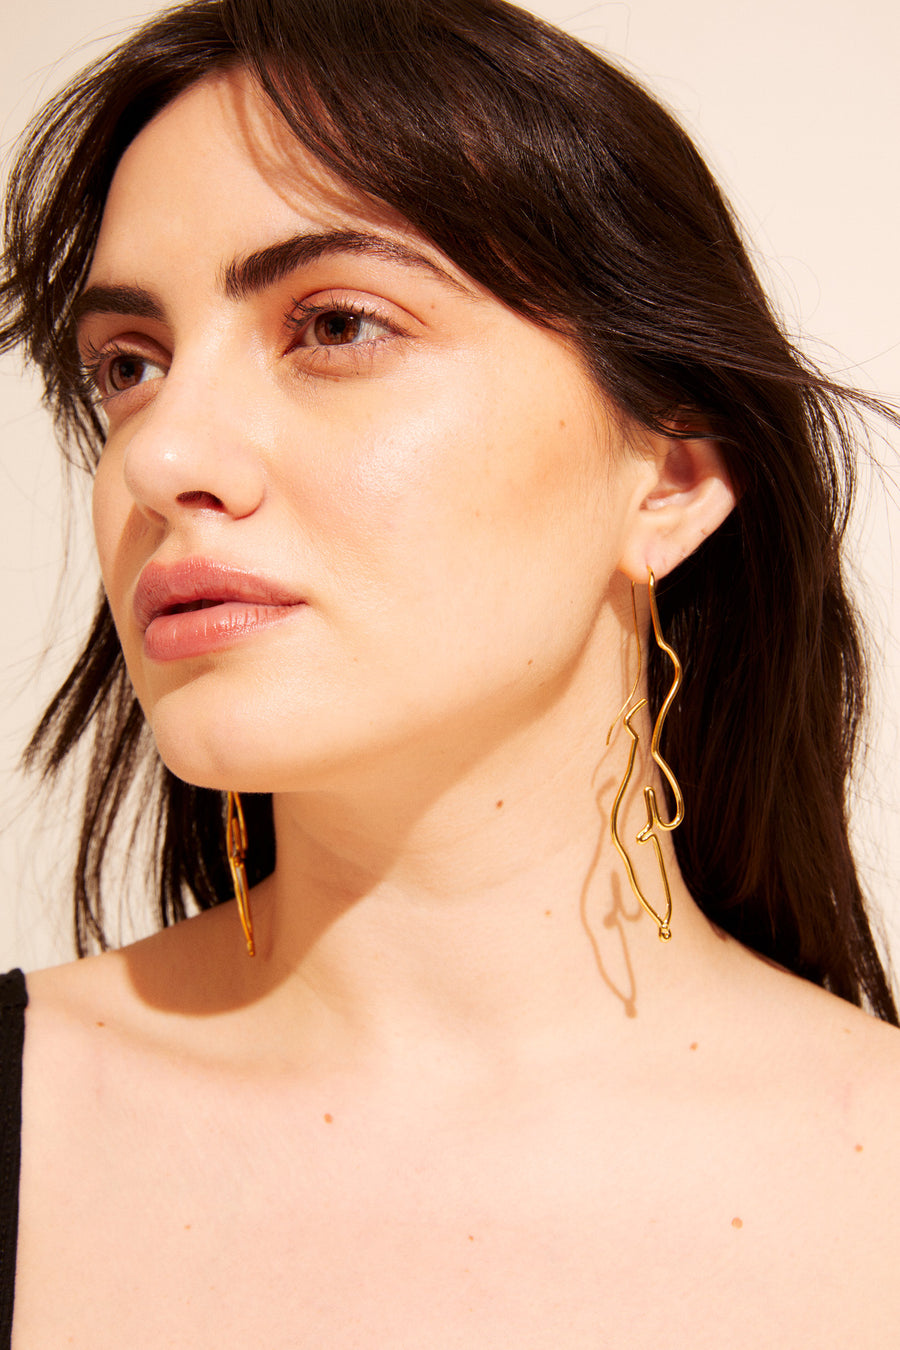 Sold in a set, wear together or one on its own. The Figure Earring hangs with no backing and has a weightless feel to it. One size fits all.